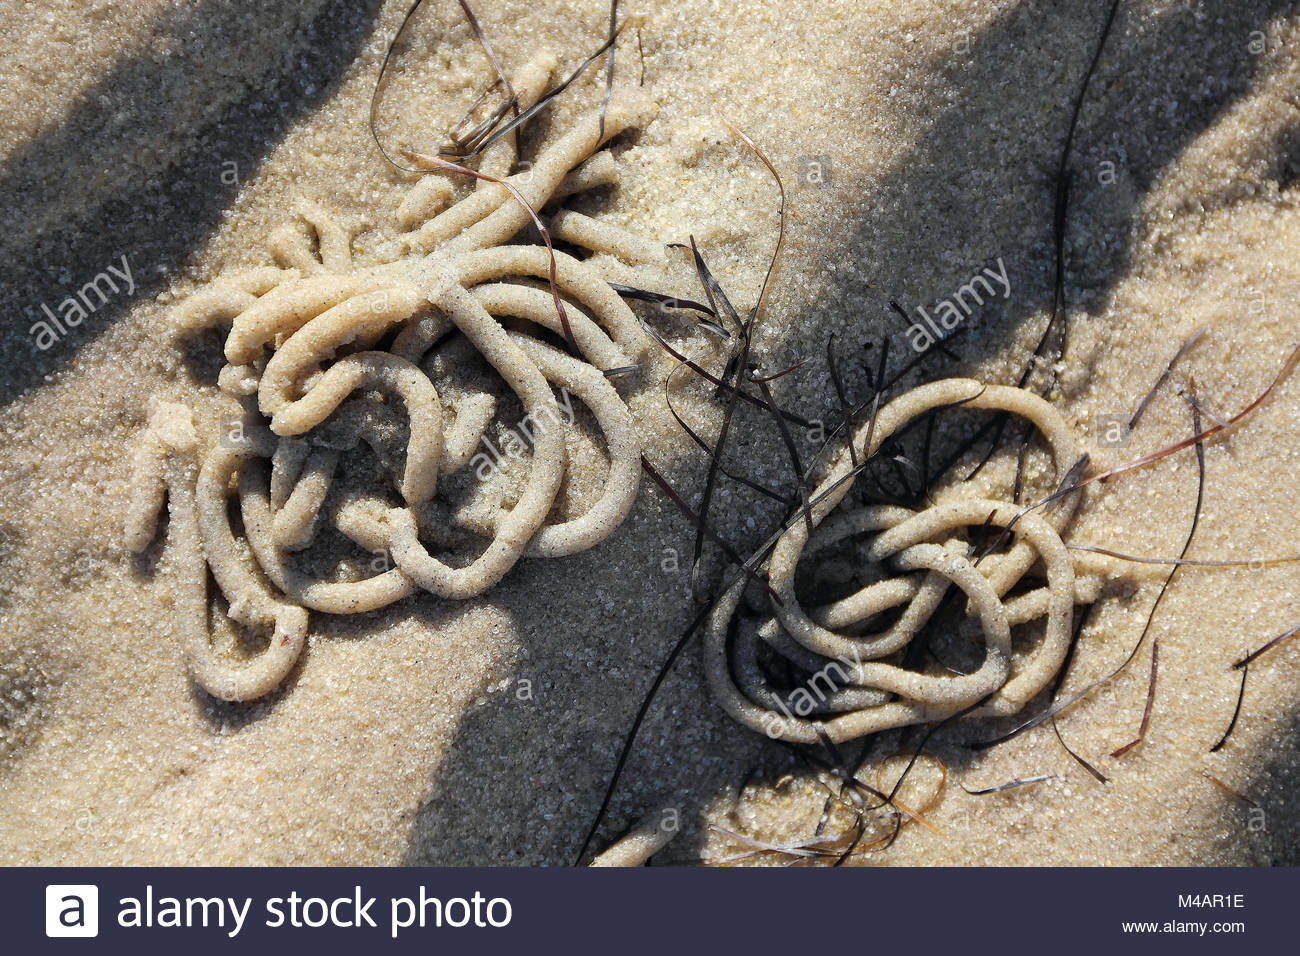 Heaps of Lugworm in the tidal flats at low tide - Stock Image